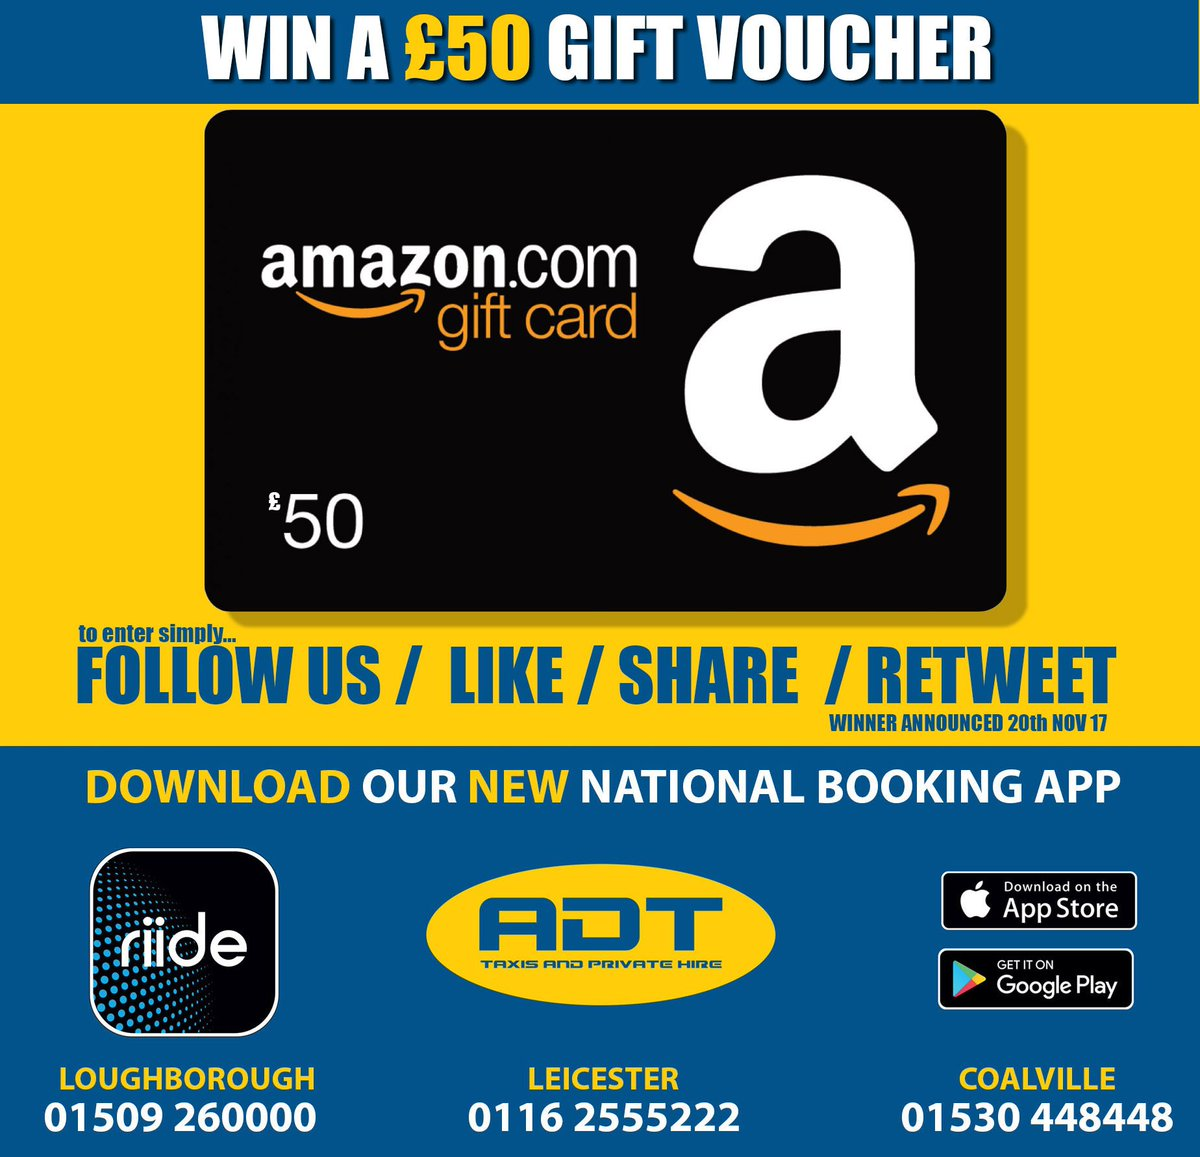 WIN £50 Amazon Gift Vouchers ! How !? Simply LIKE our page... LIKE &amp; SHARE this post and COMMENT what you would like to use the £50 gift vouchers for maybe !? What would YOU spend it on ? #win #gift #prize #competition #free #voucher #£50 #enter #taxi #cab #adttaxis #RT <br>http://pic.twitter.com/h7mJZDPKYq